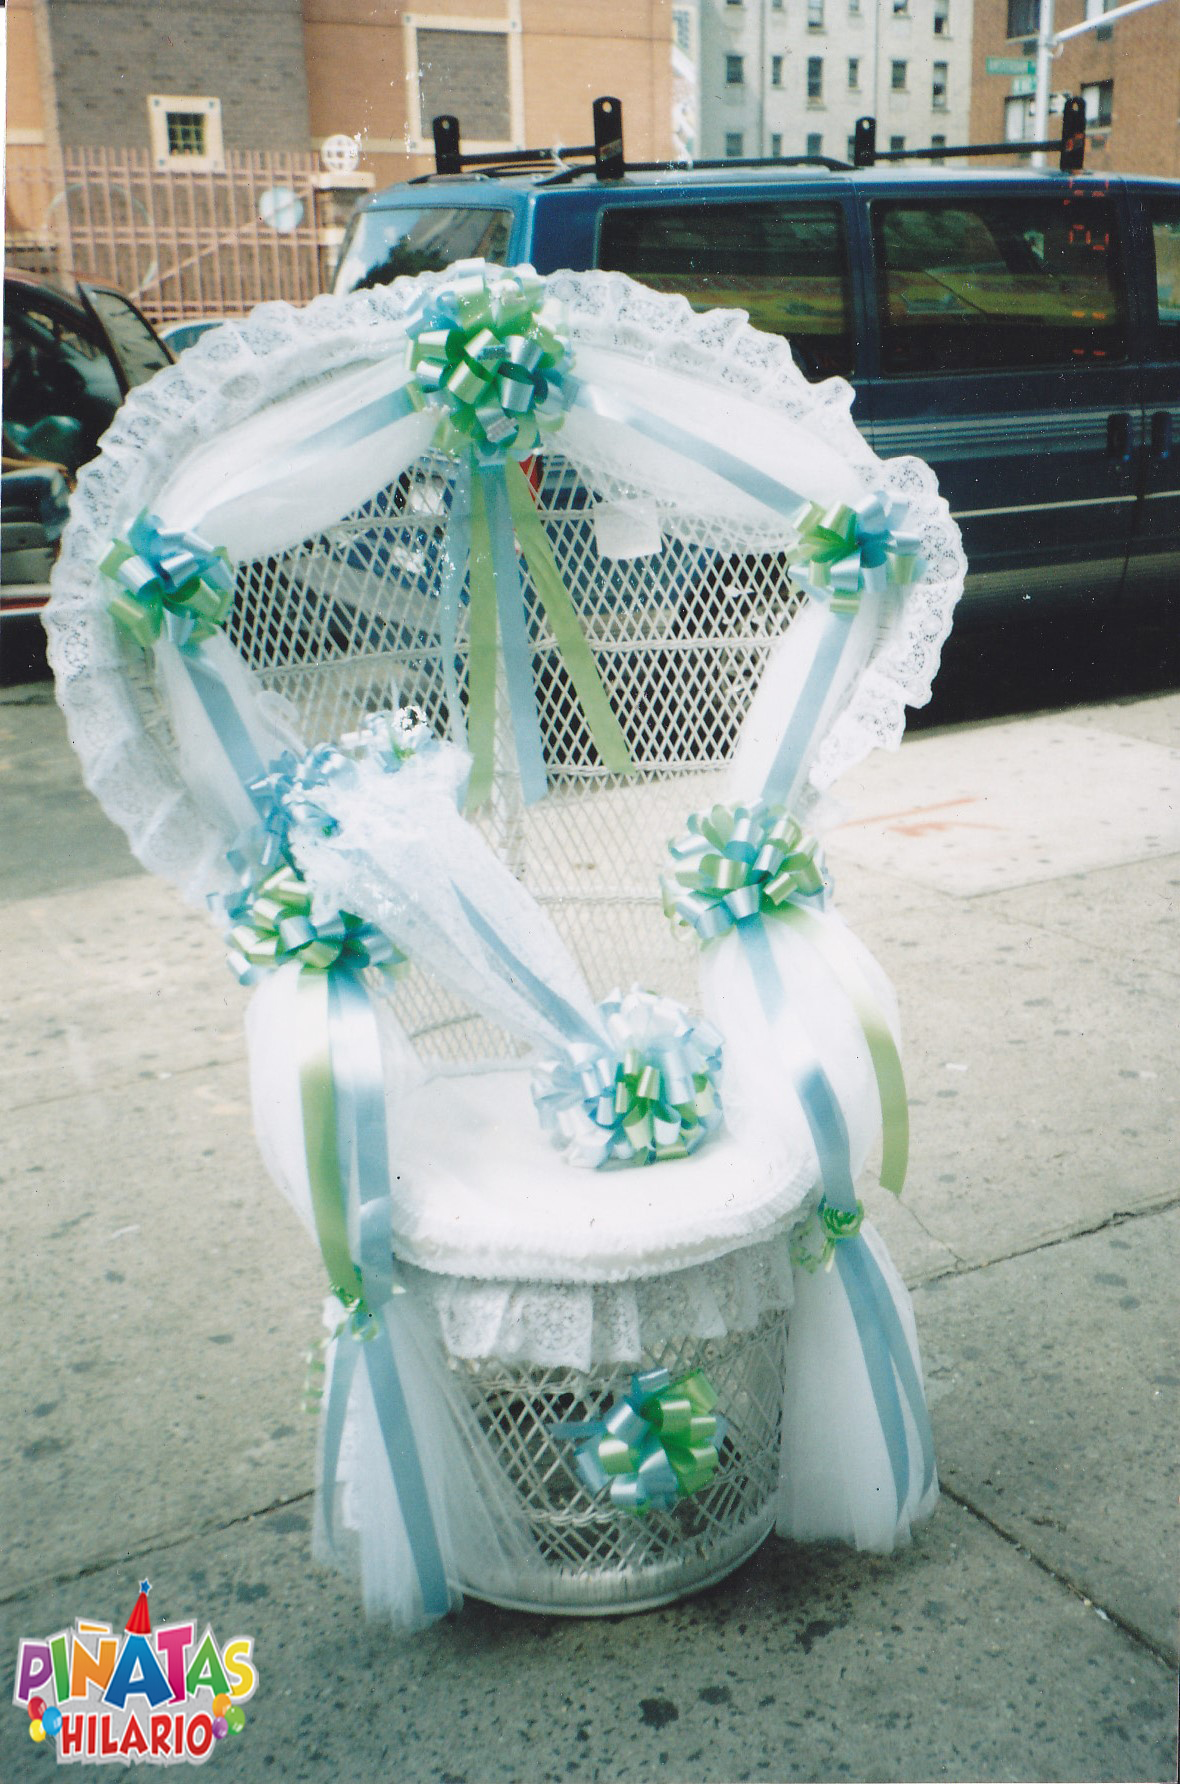 decorating chair for baby shower director covers nz decorations  pinatas hilario party supplies